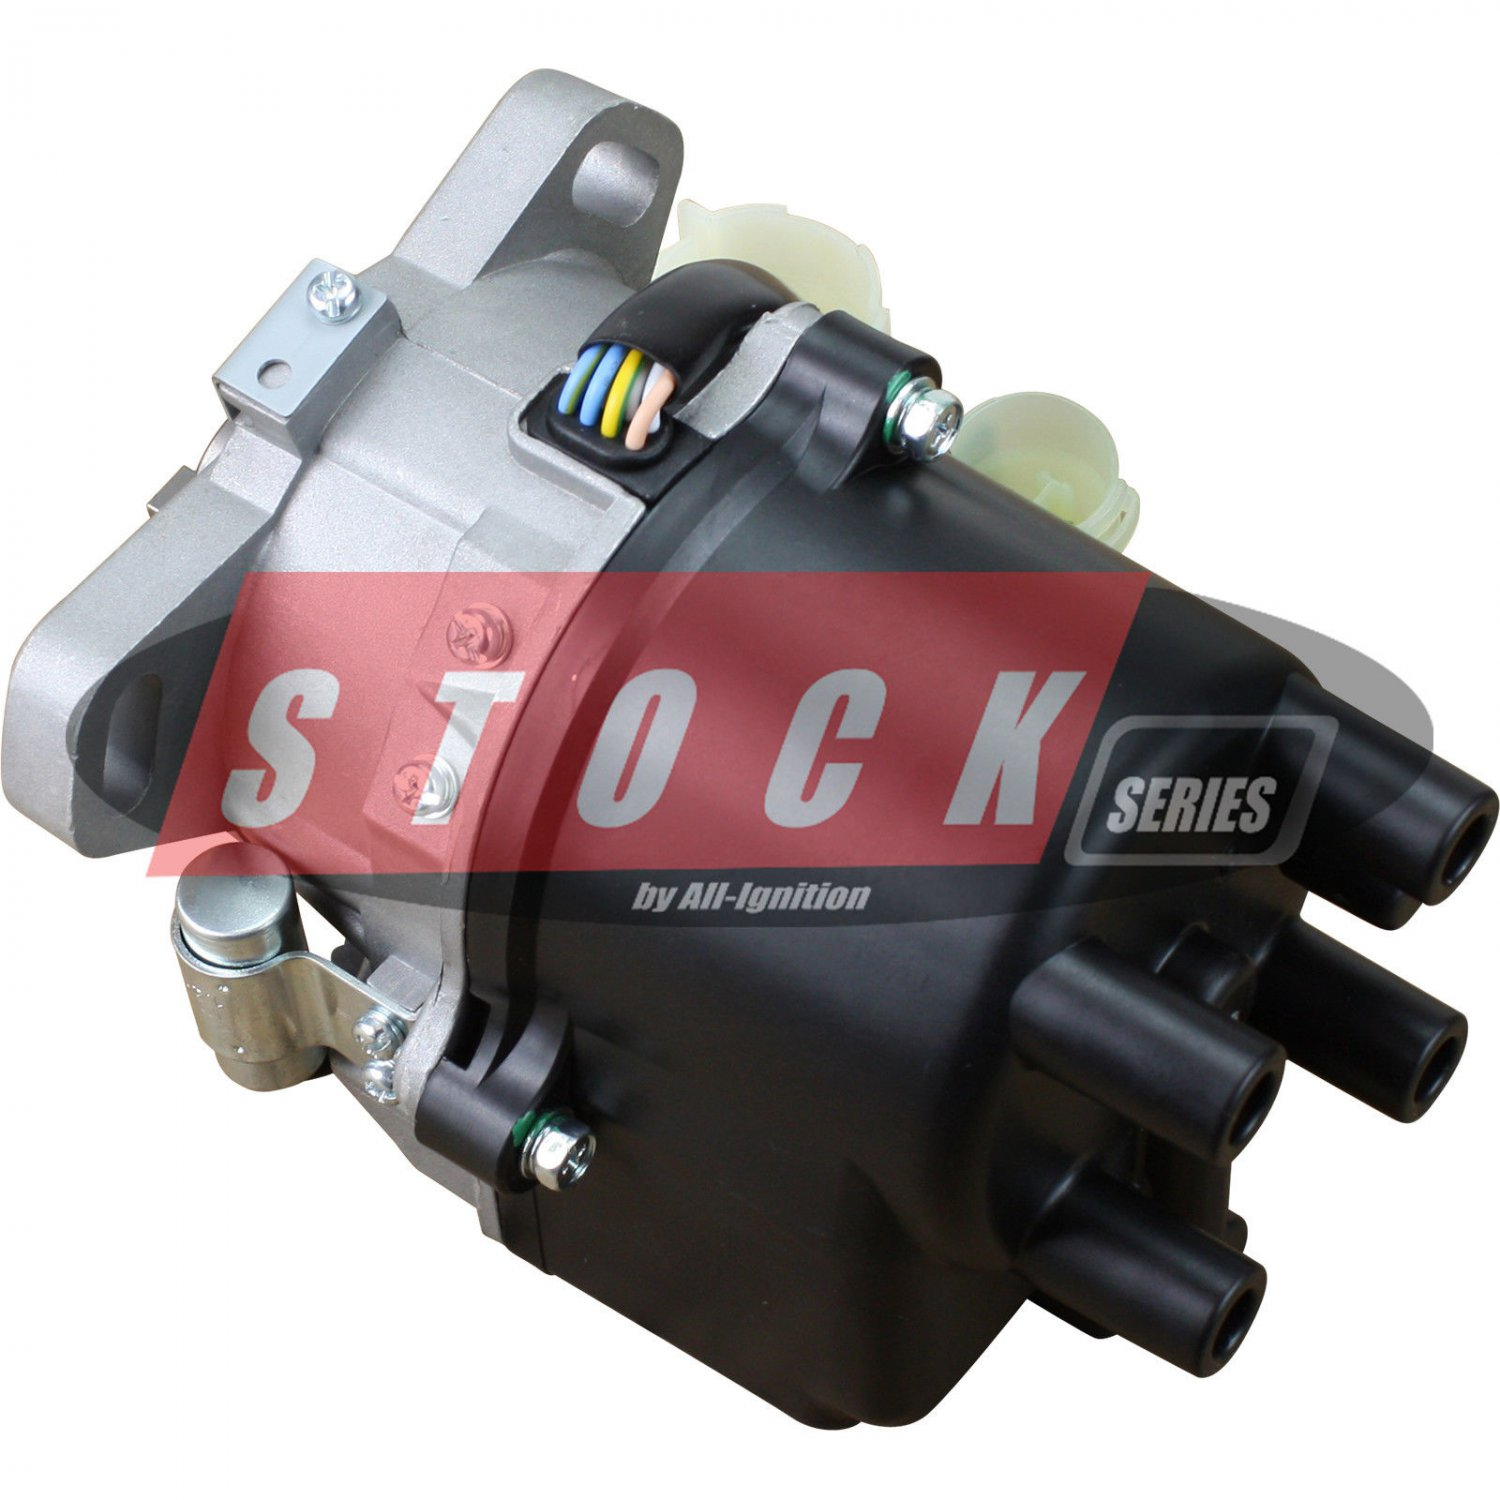 New Ignition Distributor For 1990-1991 Acura Integra 1.8L